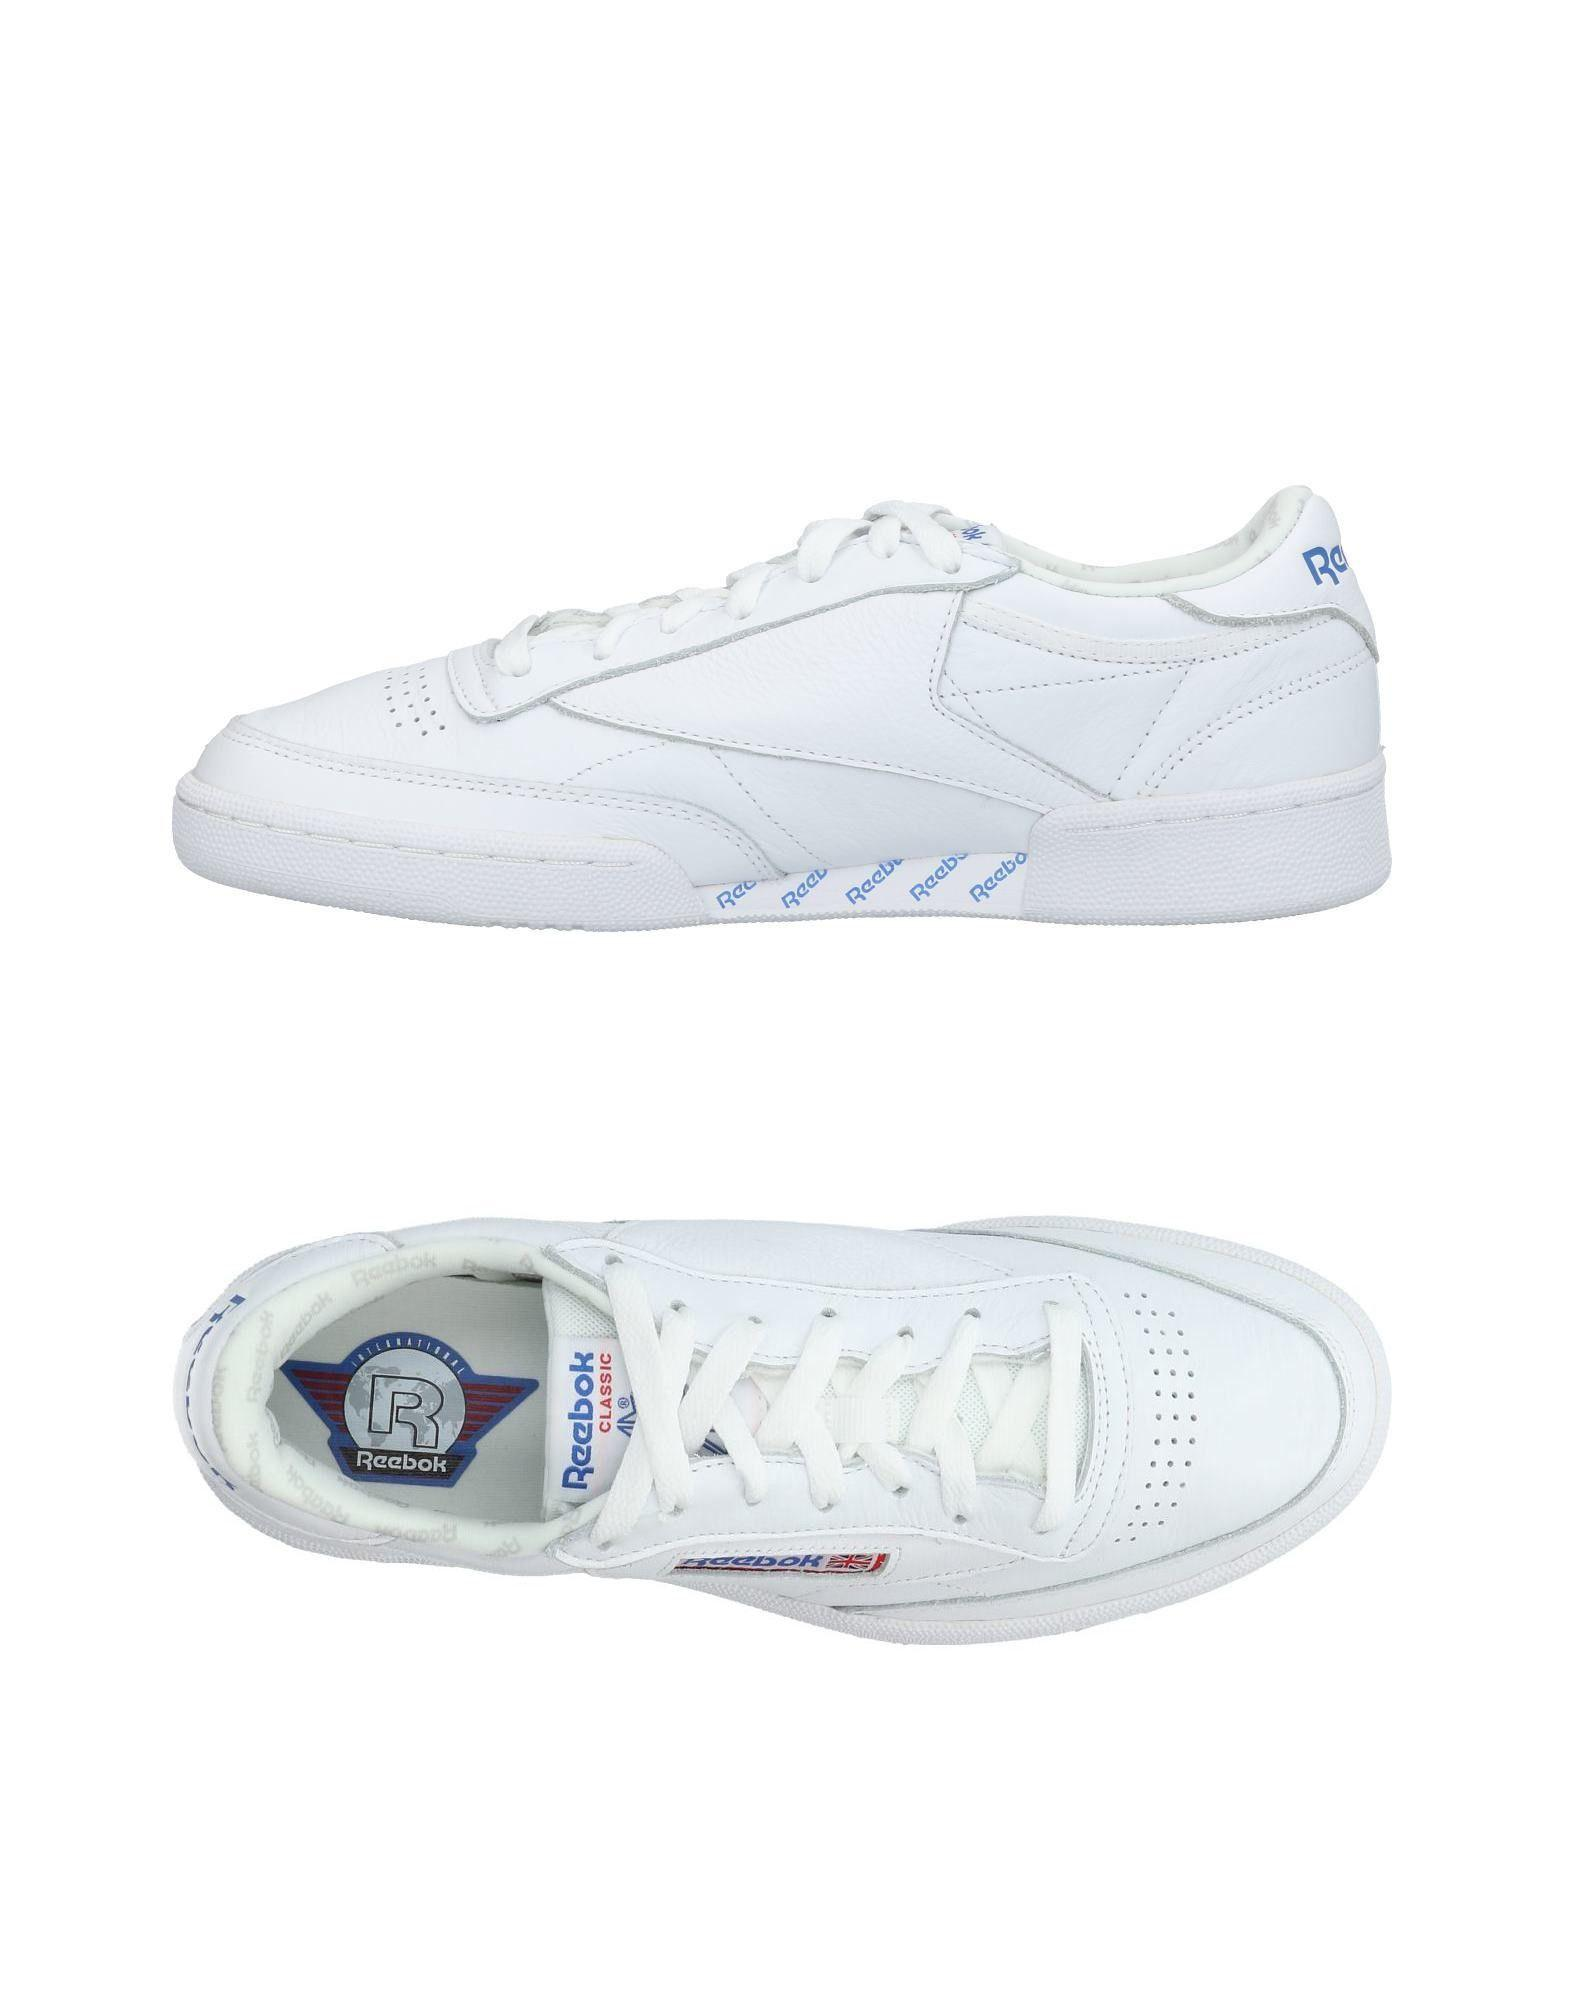 Reebok Sneakers In White